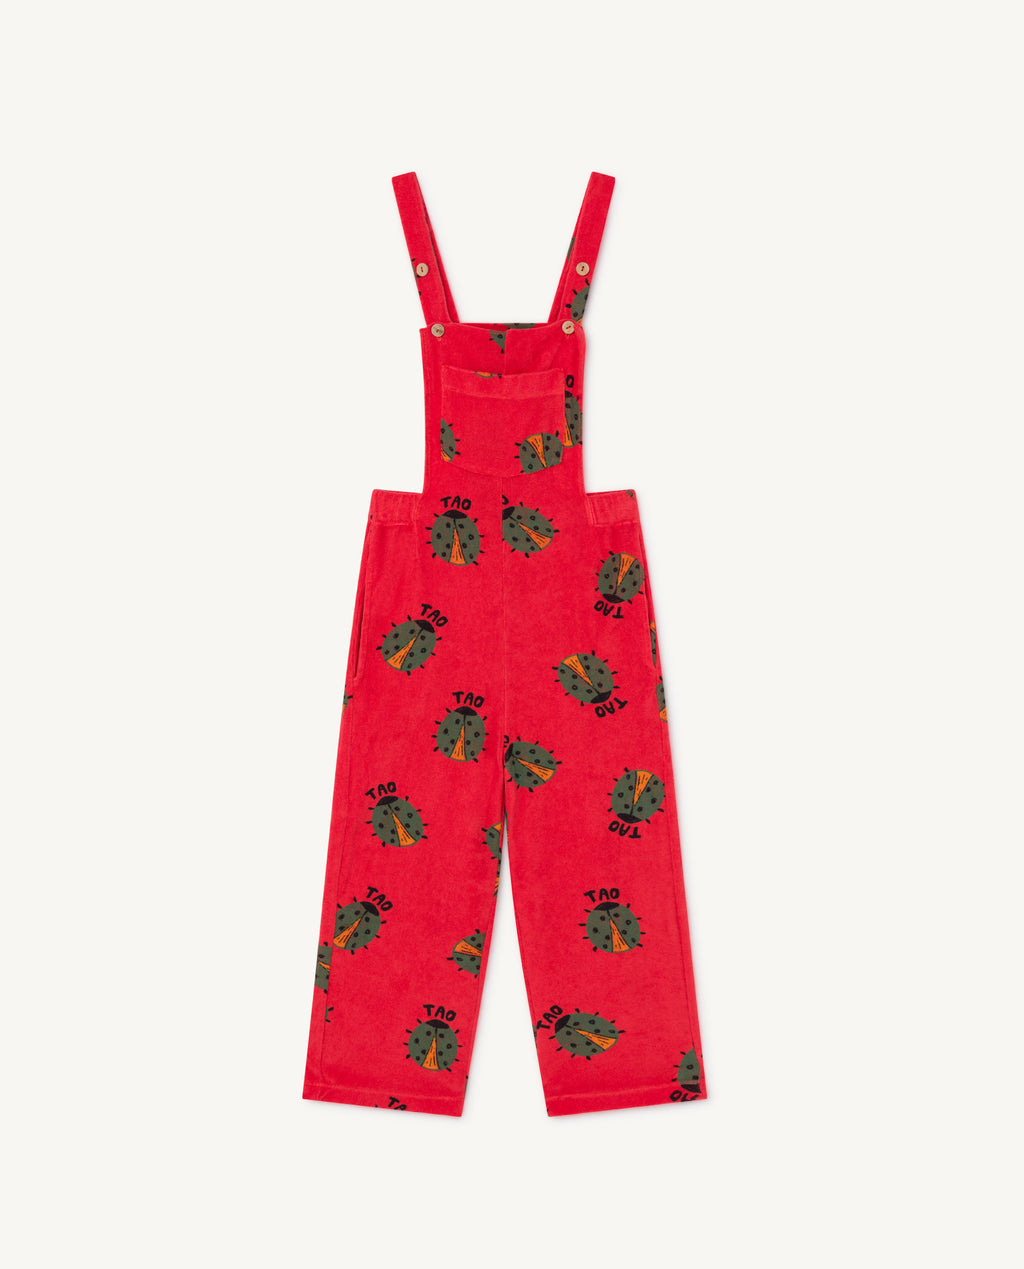 Eagle Kids Dungaree - Red Lady Bug